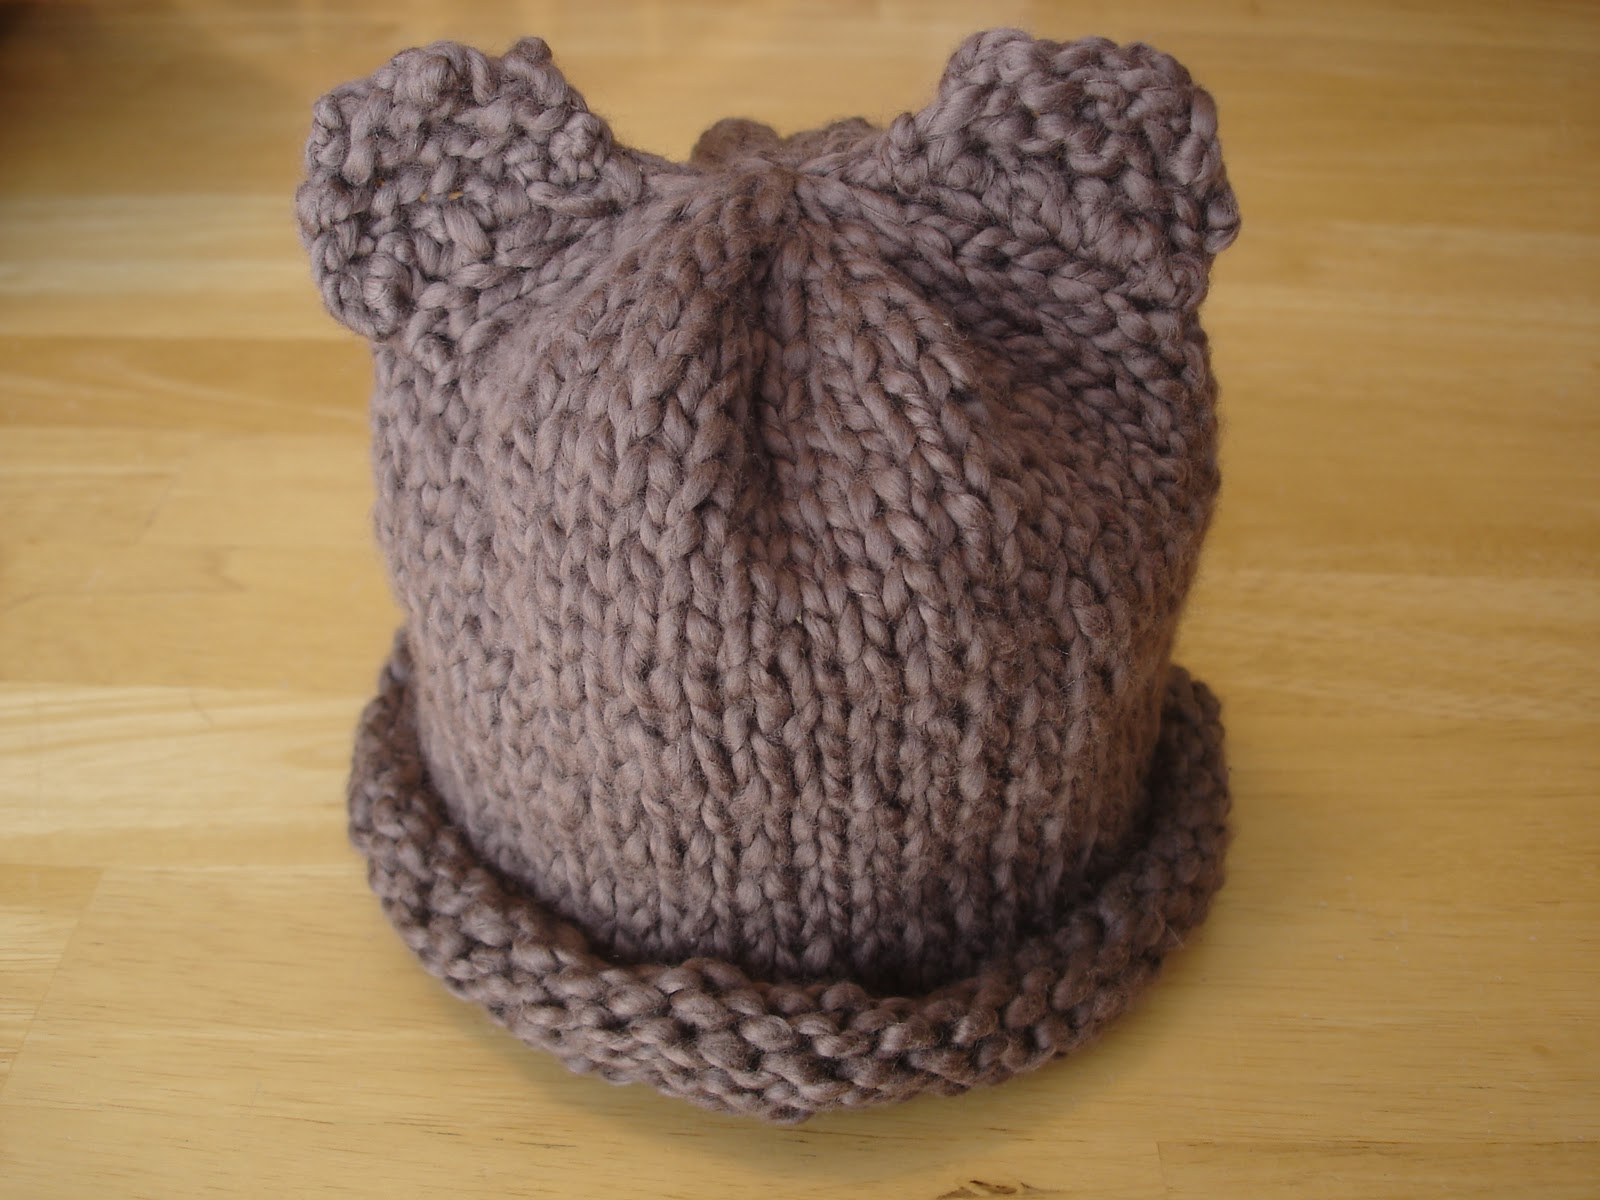 New Born Knitting Patterns Ba Hat Knitting Pattern Free Knitting Patternba Bear Crochet